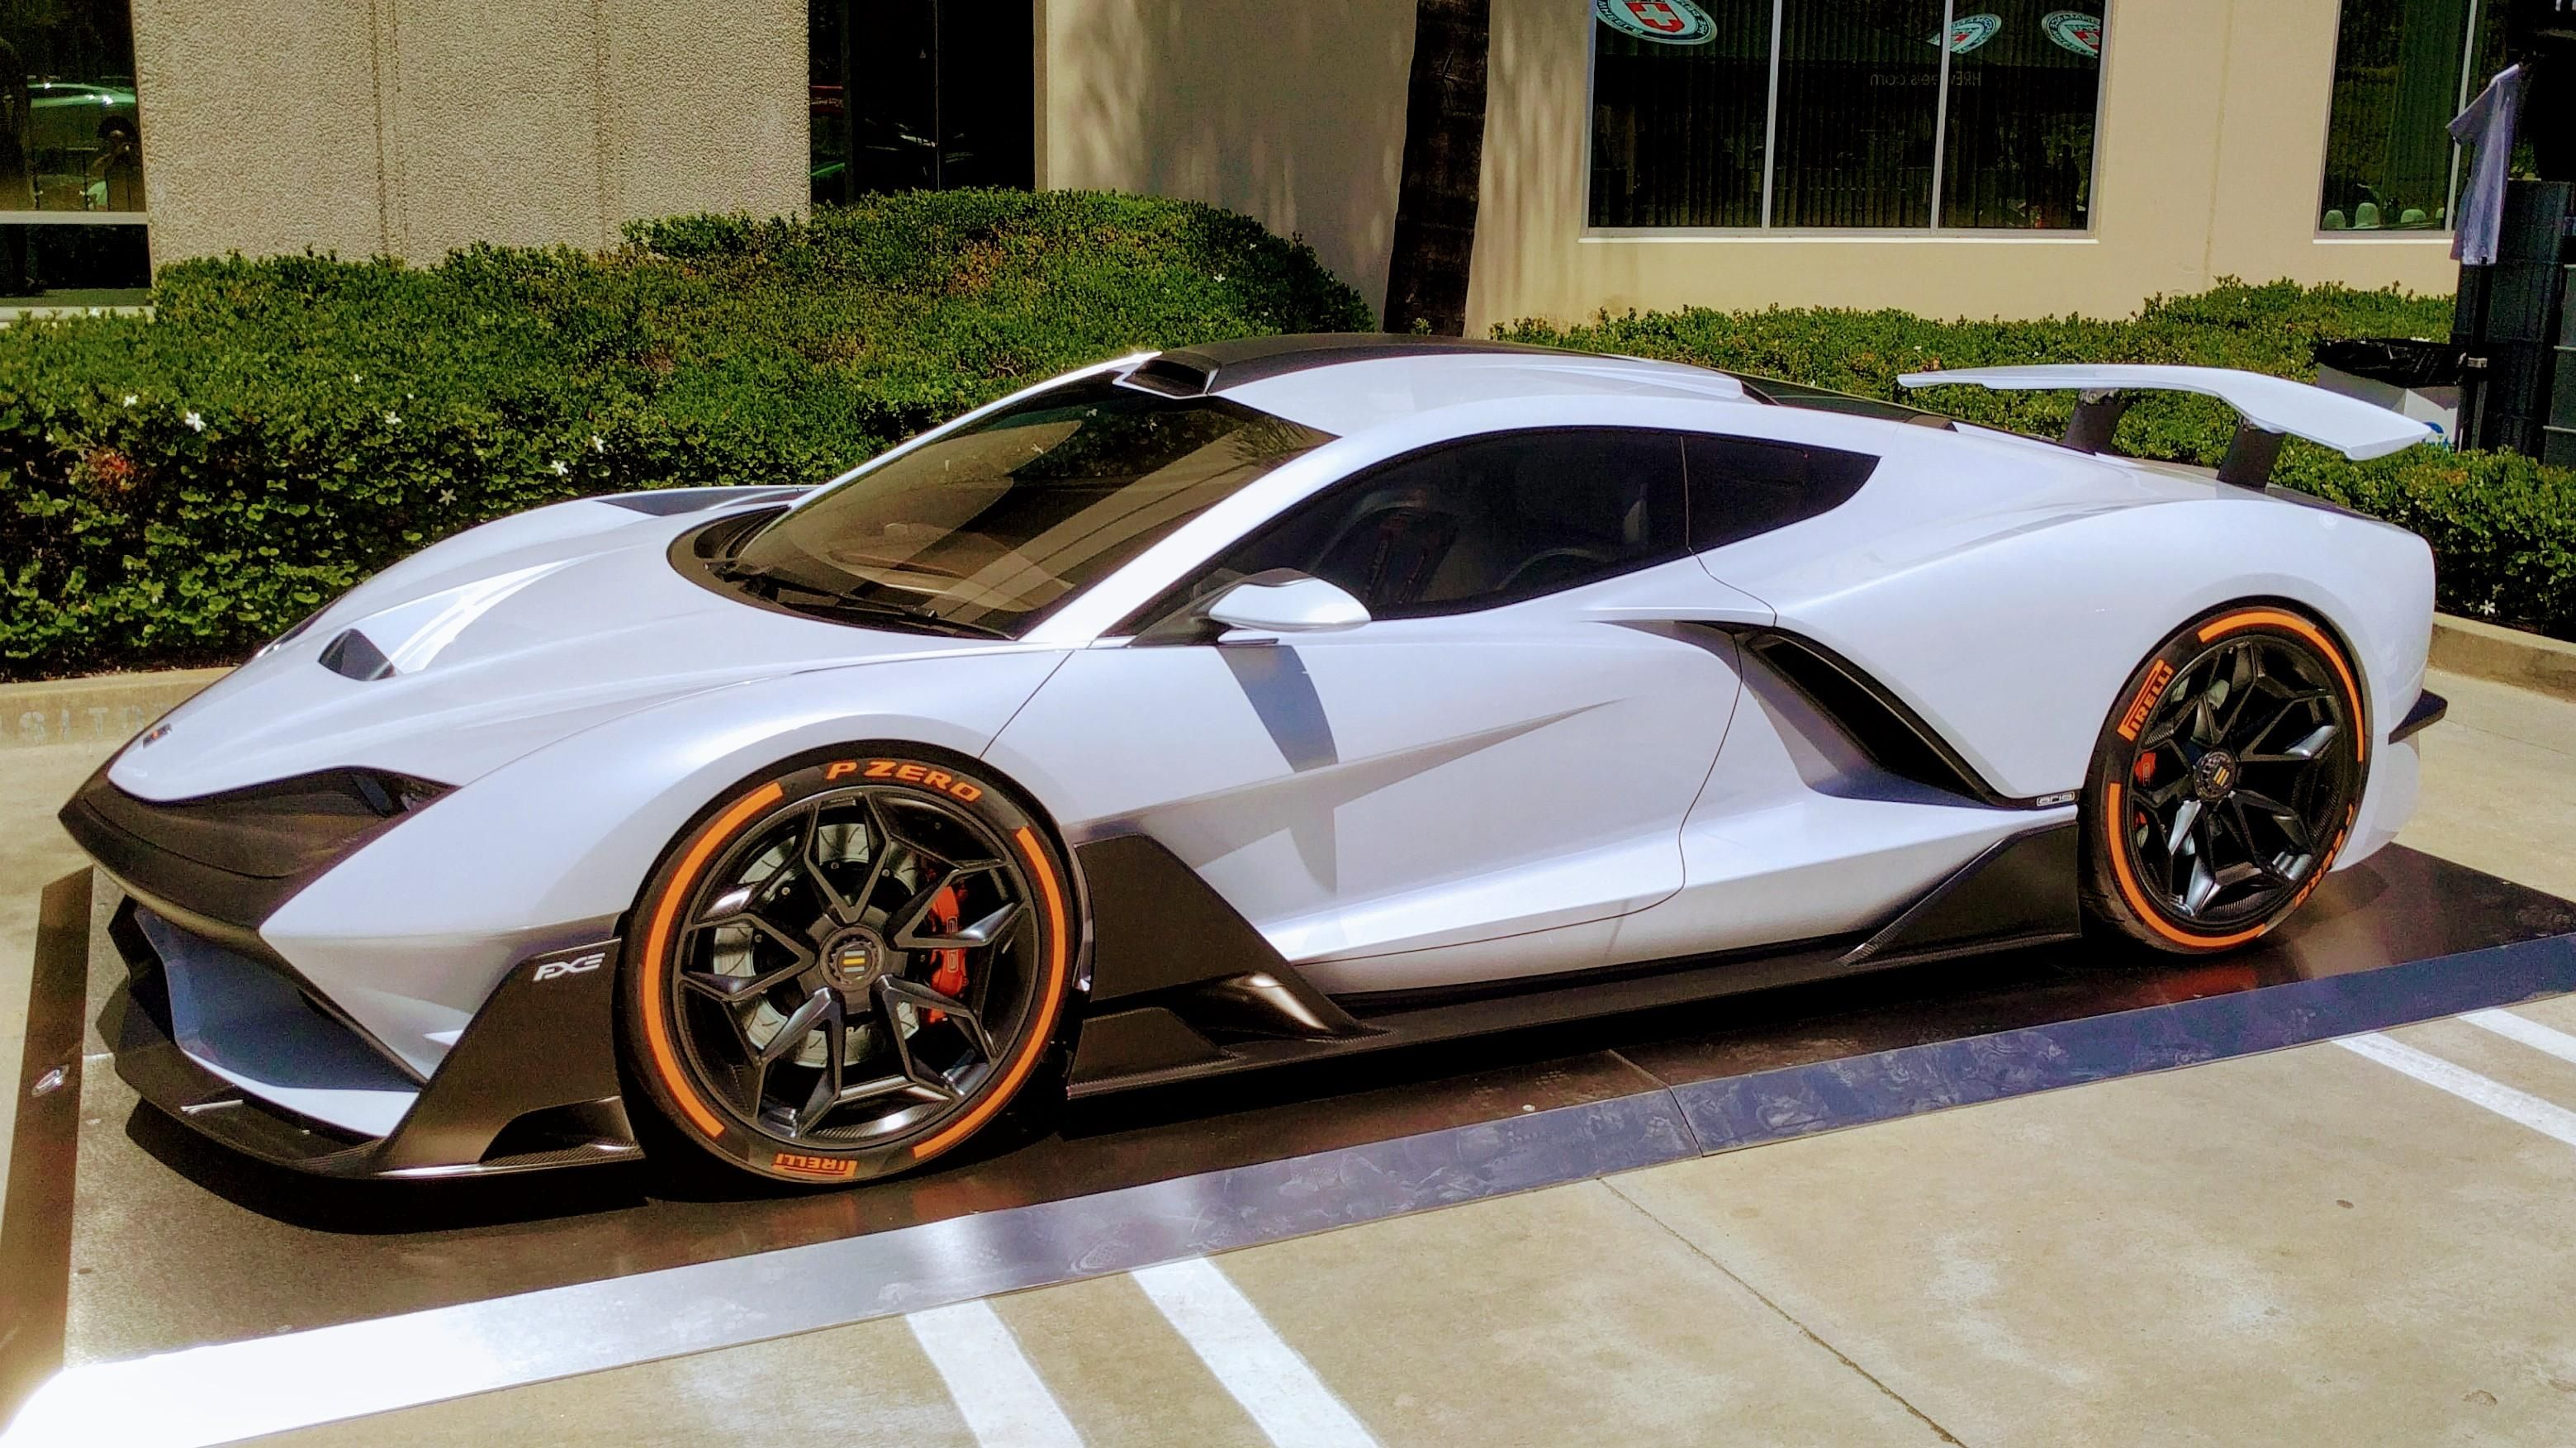 What Is This Work Of Art Super Fast Cars Super Cars Sport Cars